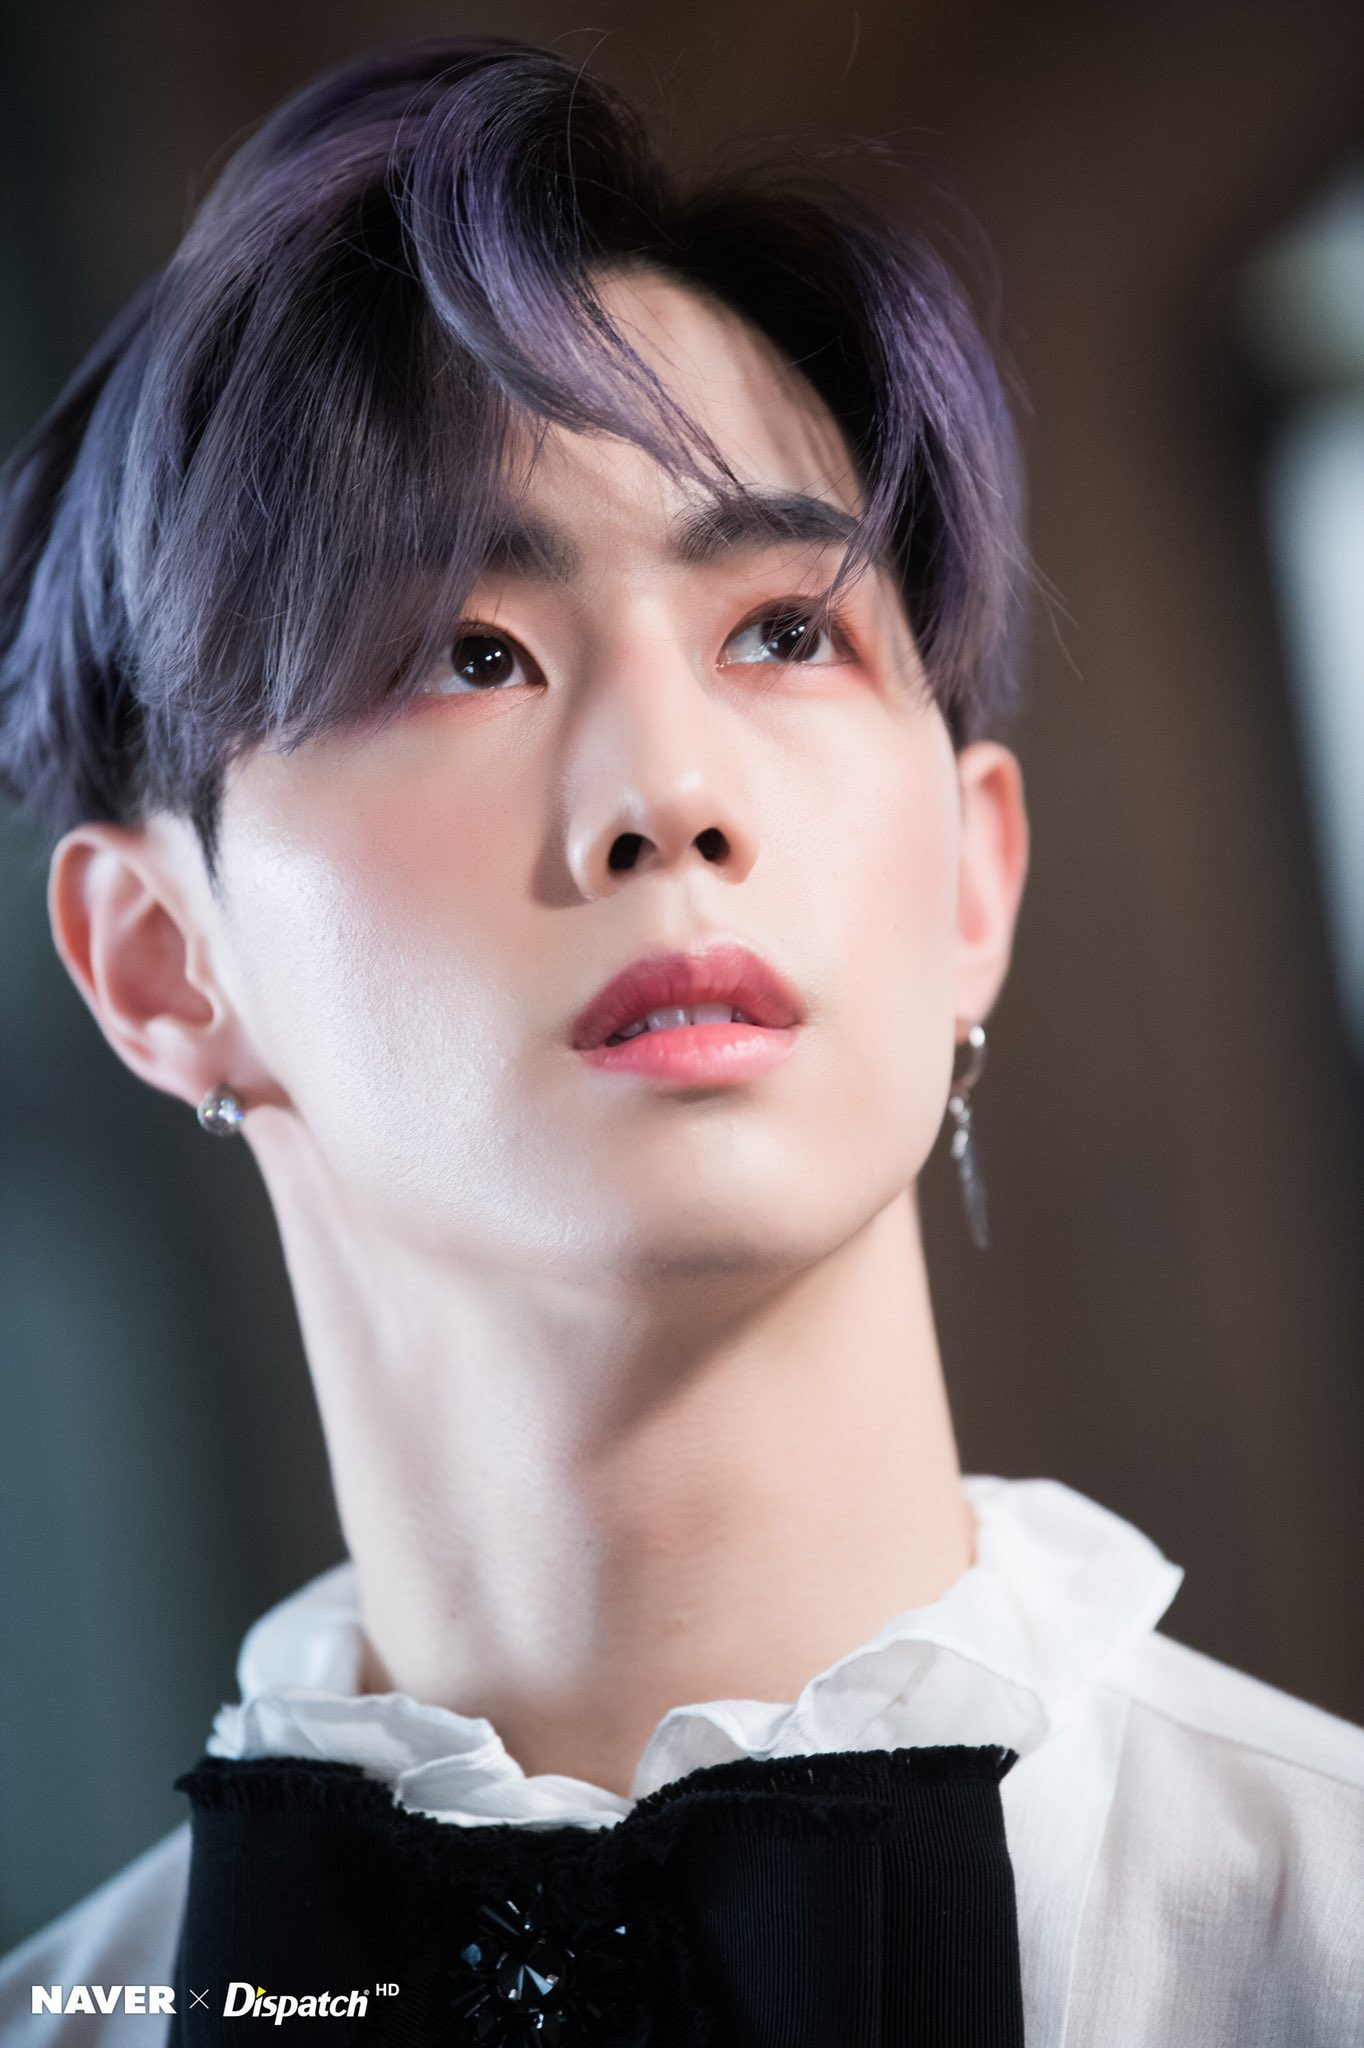 NAVER x Dispatch ¬ルᆬ￯ᄌマ #Mark #→ᄃネ■チᆲ  #GOT7¬チᅠ ¬チᅠ¬チᅠ ¬チᅠ #↑ᄚモ↓トᄌ→ᄌミ¬チᅠ ¬チᅠ¬チᅠ ¬チᅠ #PresentYOU¬チᅠ ¬チᅠ¬チᅠ ¬チᅠ #Lullaby¬チᅠ ¬チᅠ¬チᅠ ¬チᅠ https://t.co/RxJVKX6BAf